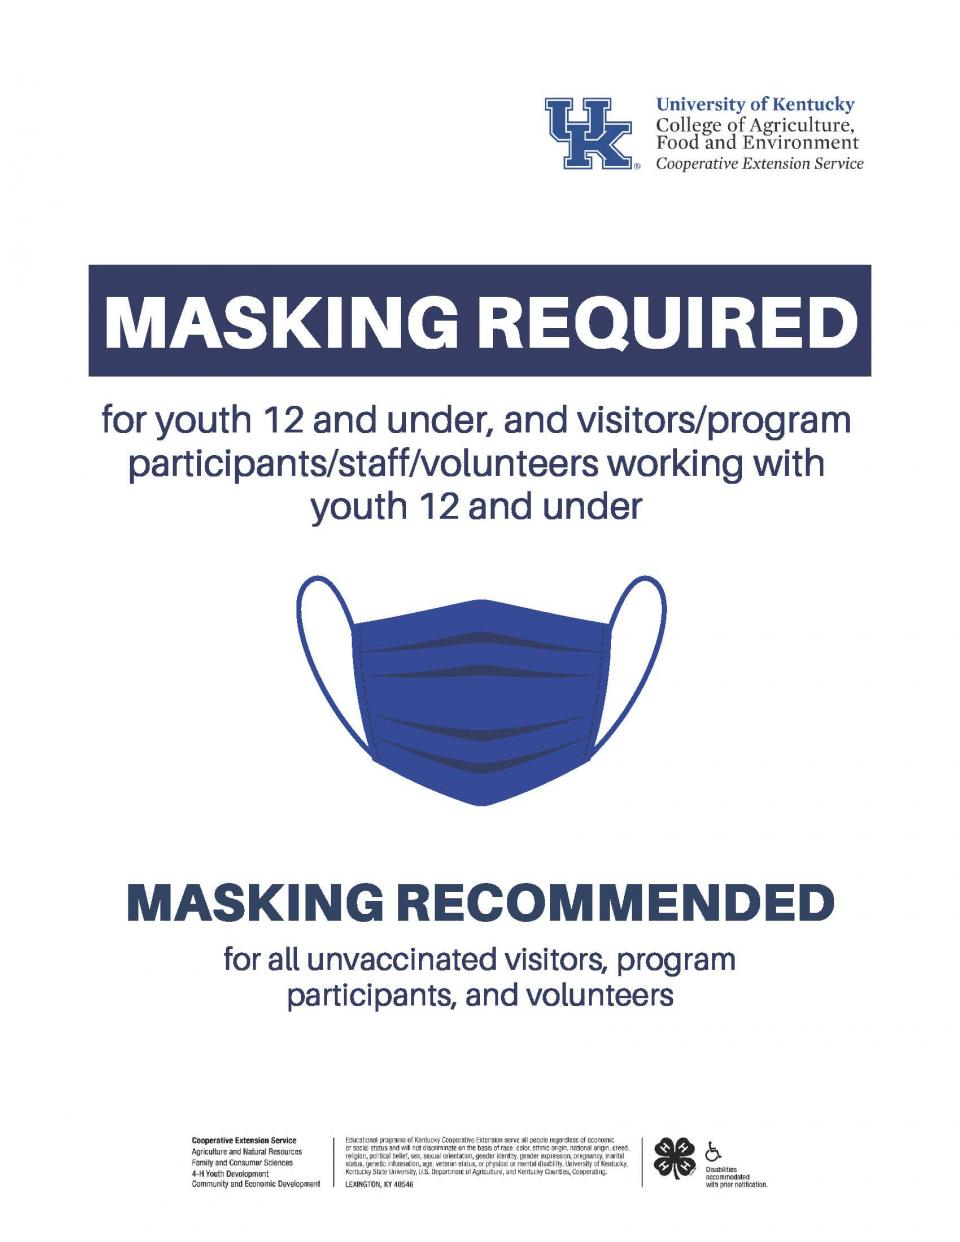 Must wear mask if around youth 12 and under.